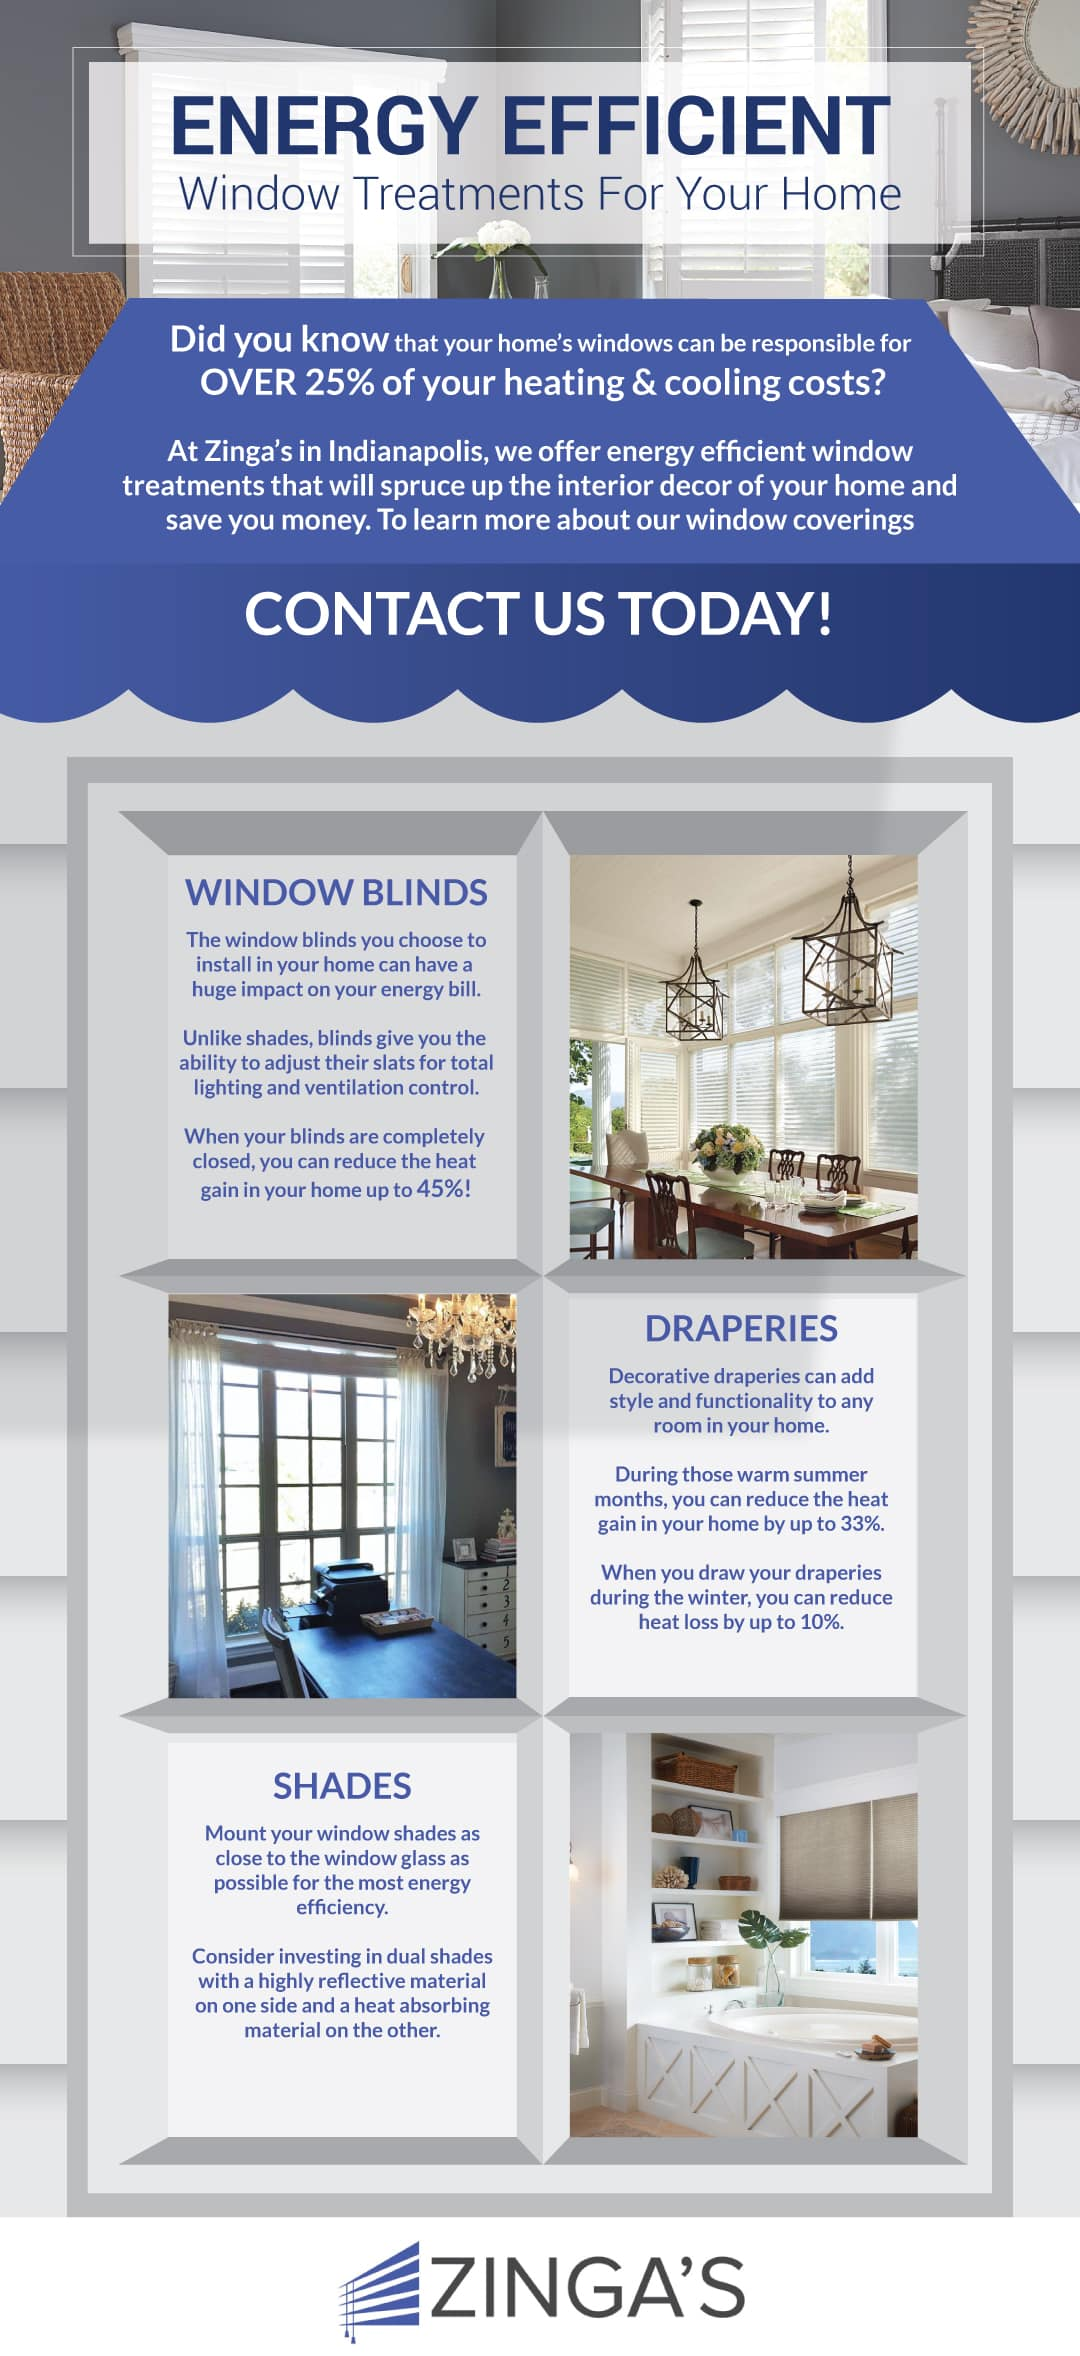 Experts Can Help You Choose The Best Window Coverings For Your Home If Re Interested In Learning More About Our Large Selection Of Blinds Shades